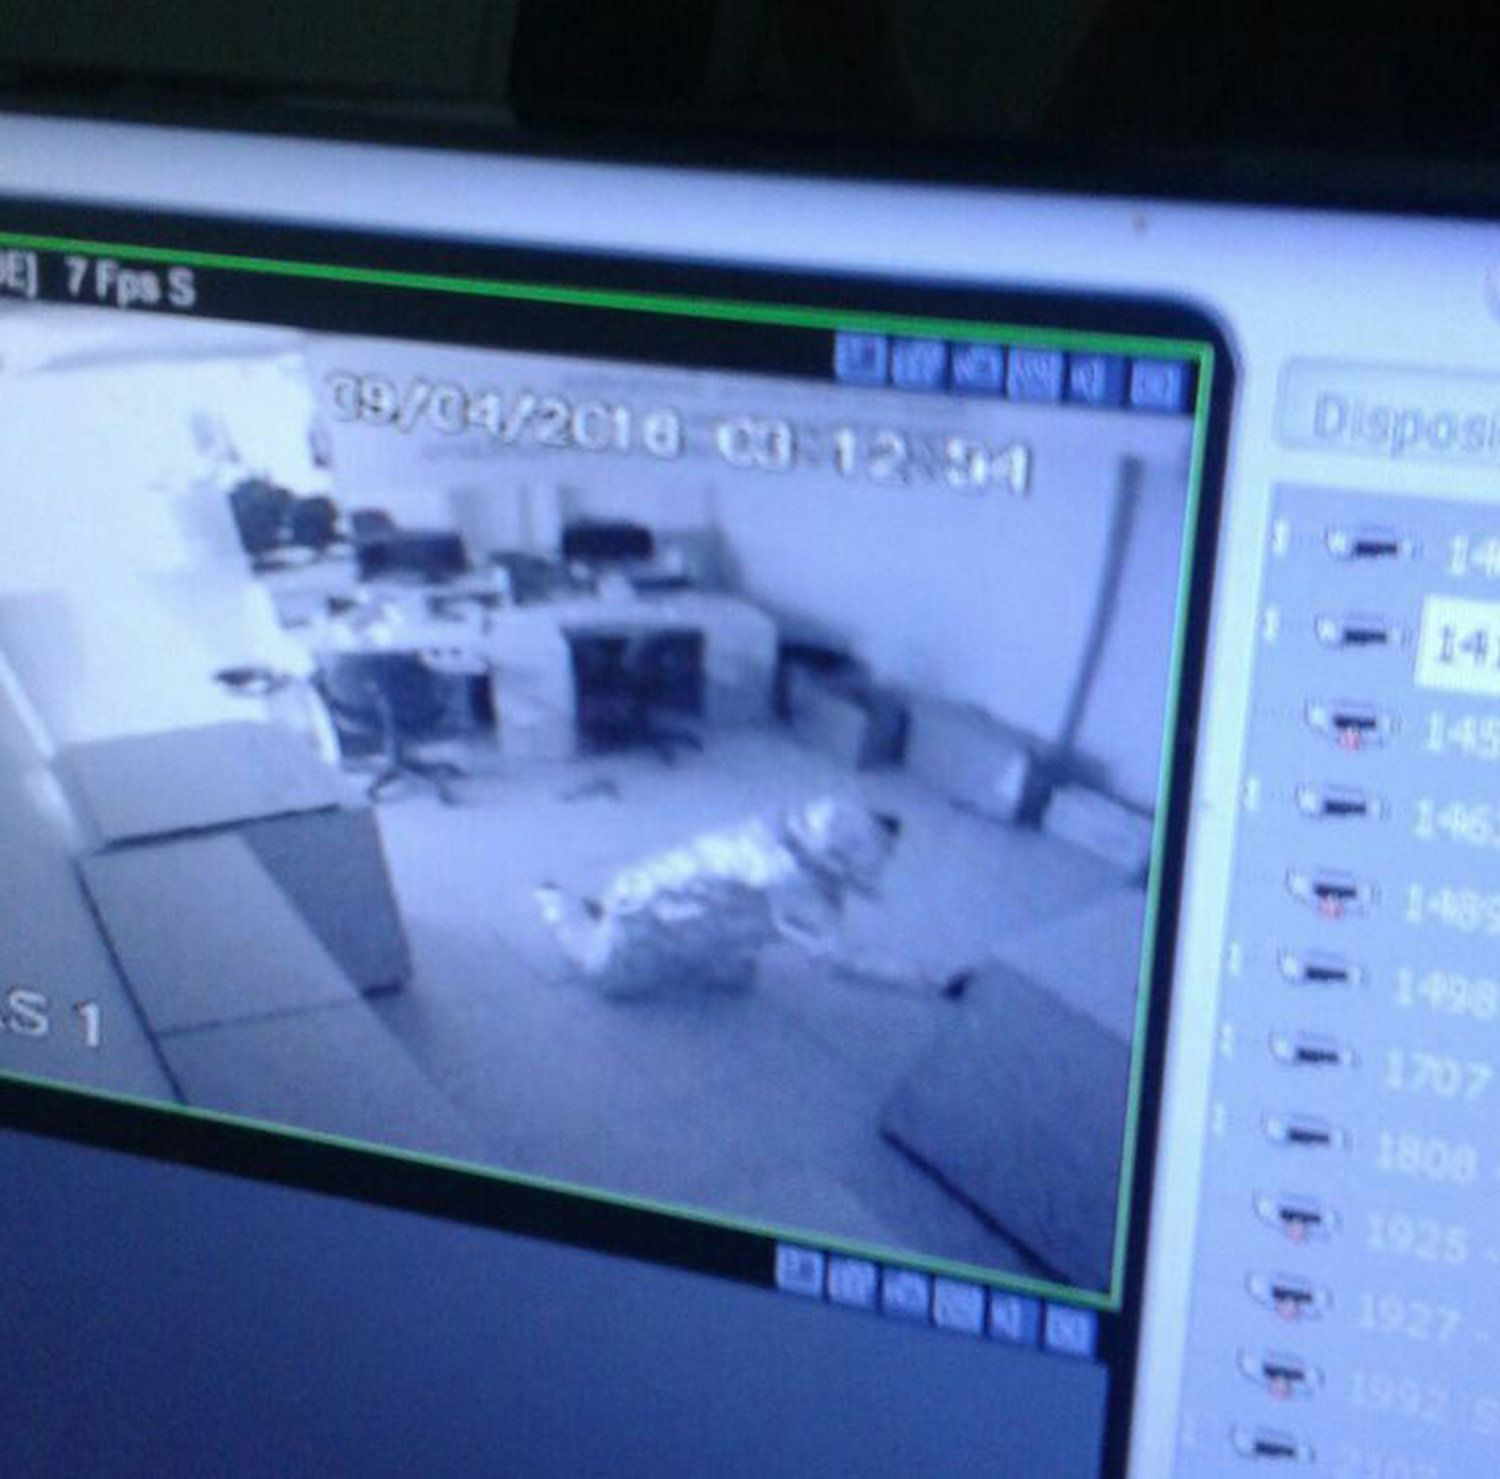 The robbers covered themselves in aluminum foil in a bid to beat the bank's alarm system.